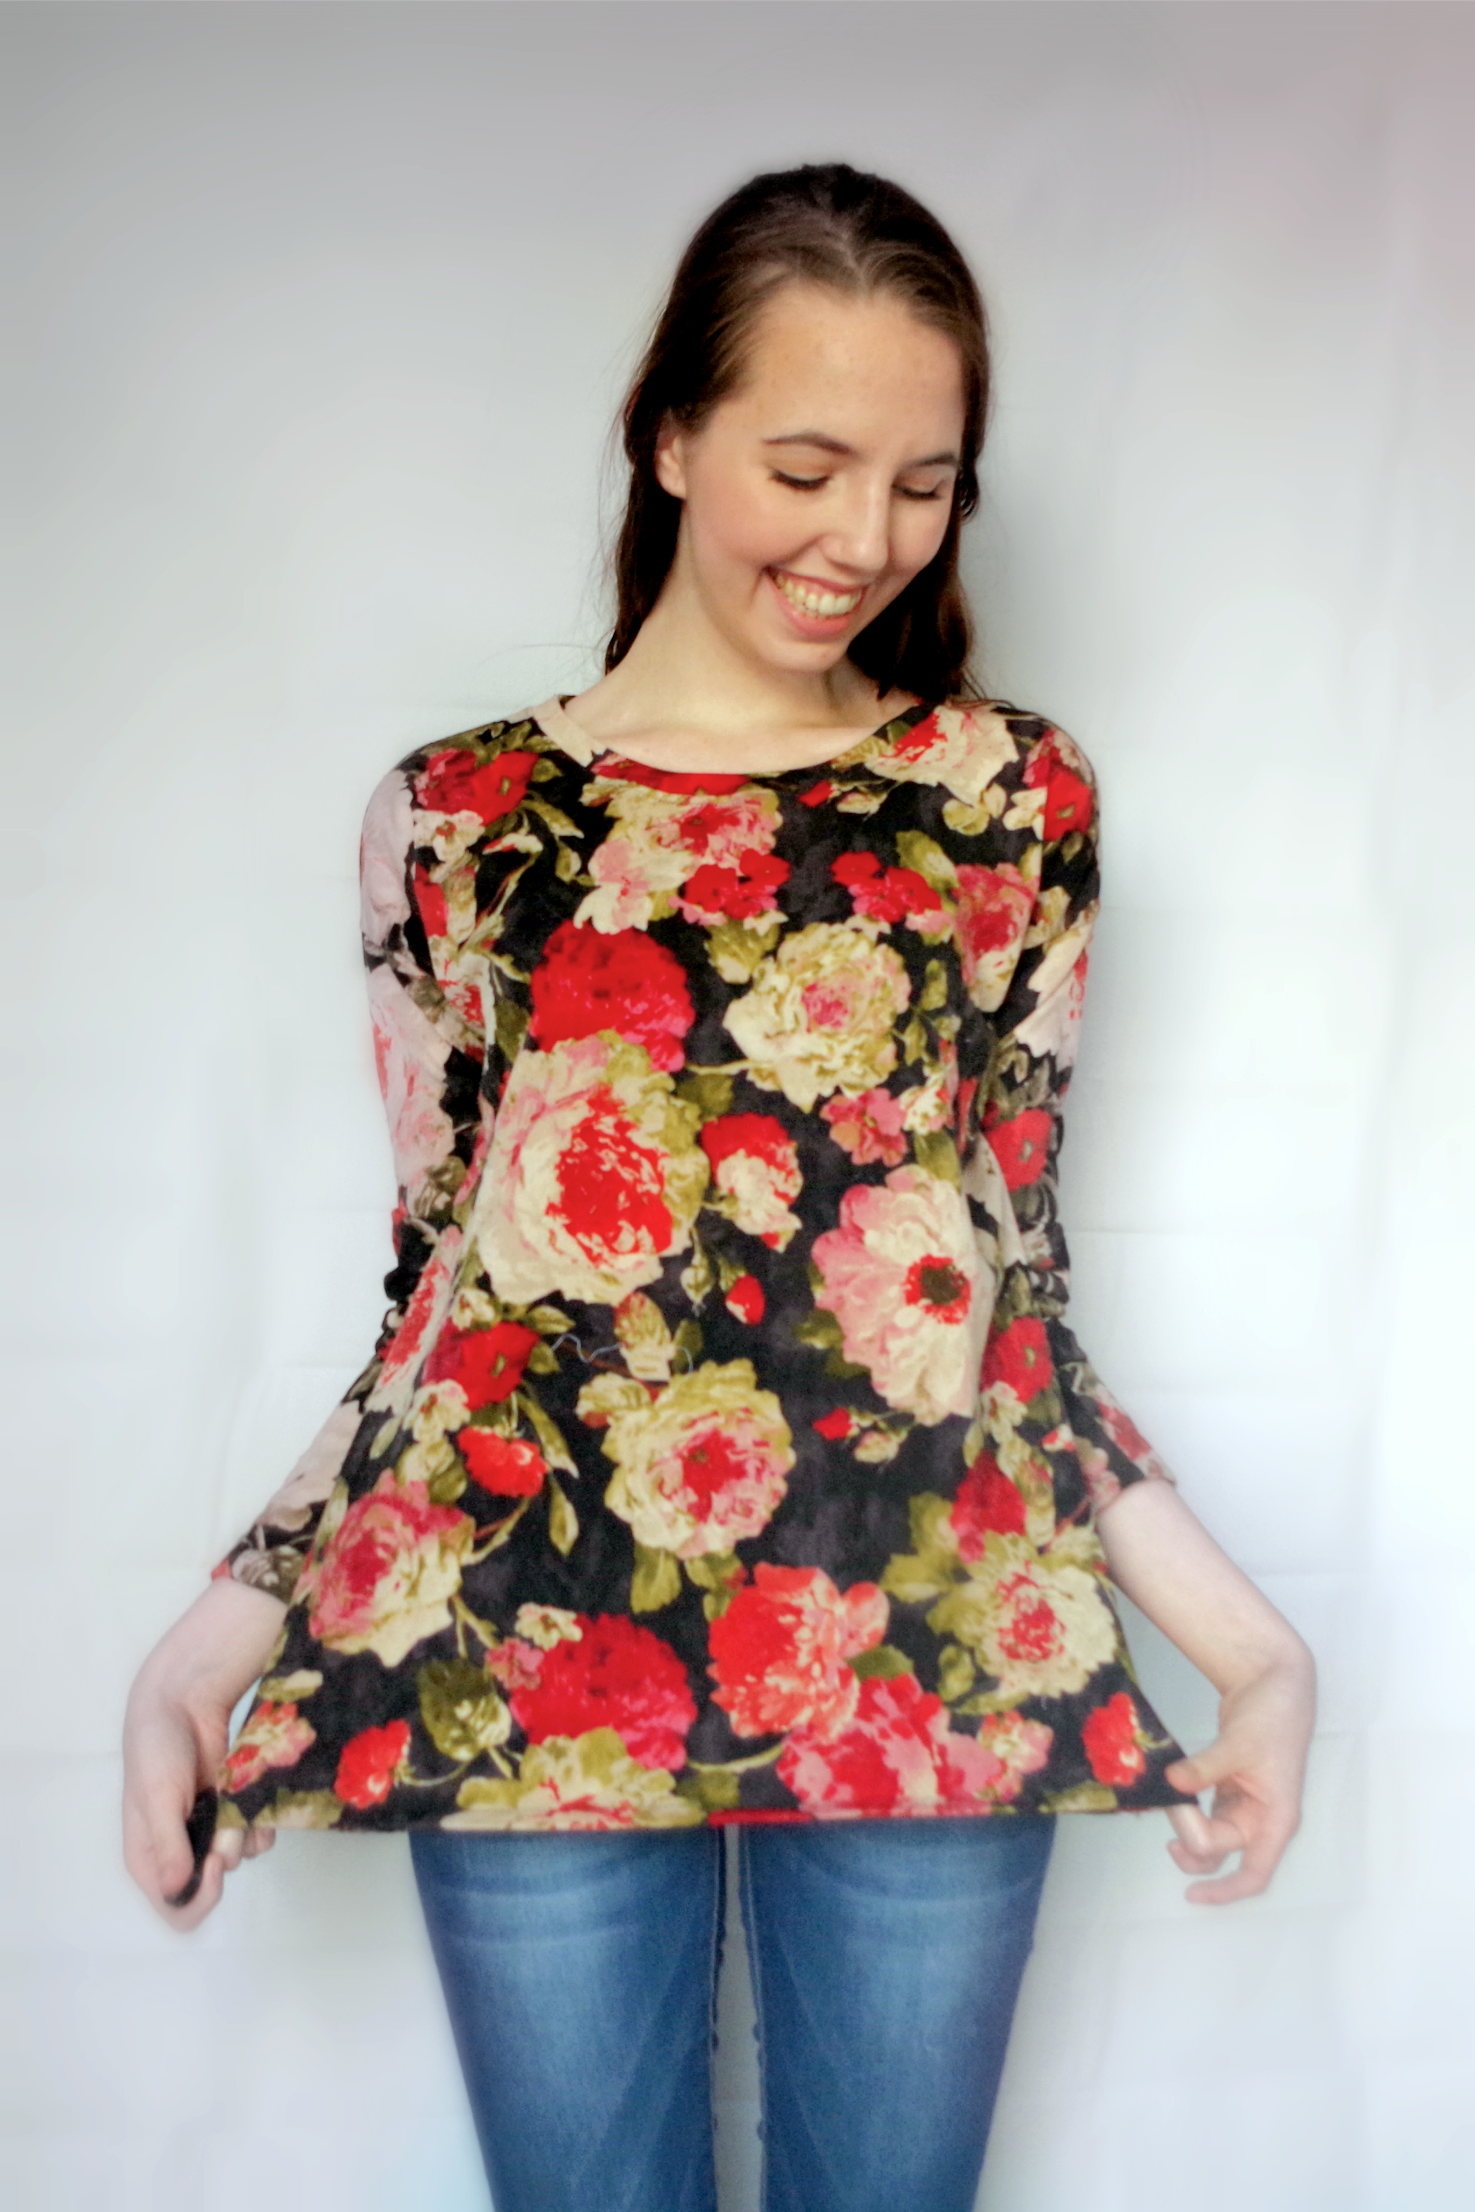 This cozy floral sweater will keep you warm this winter! DIY Sweater made with a FREE pattern. More details in the blog post!